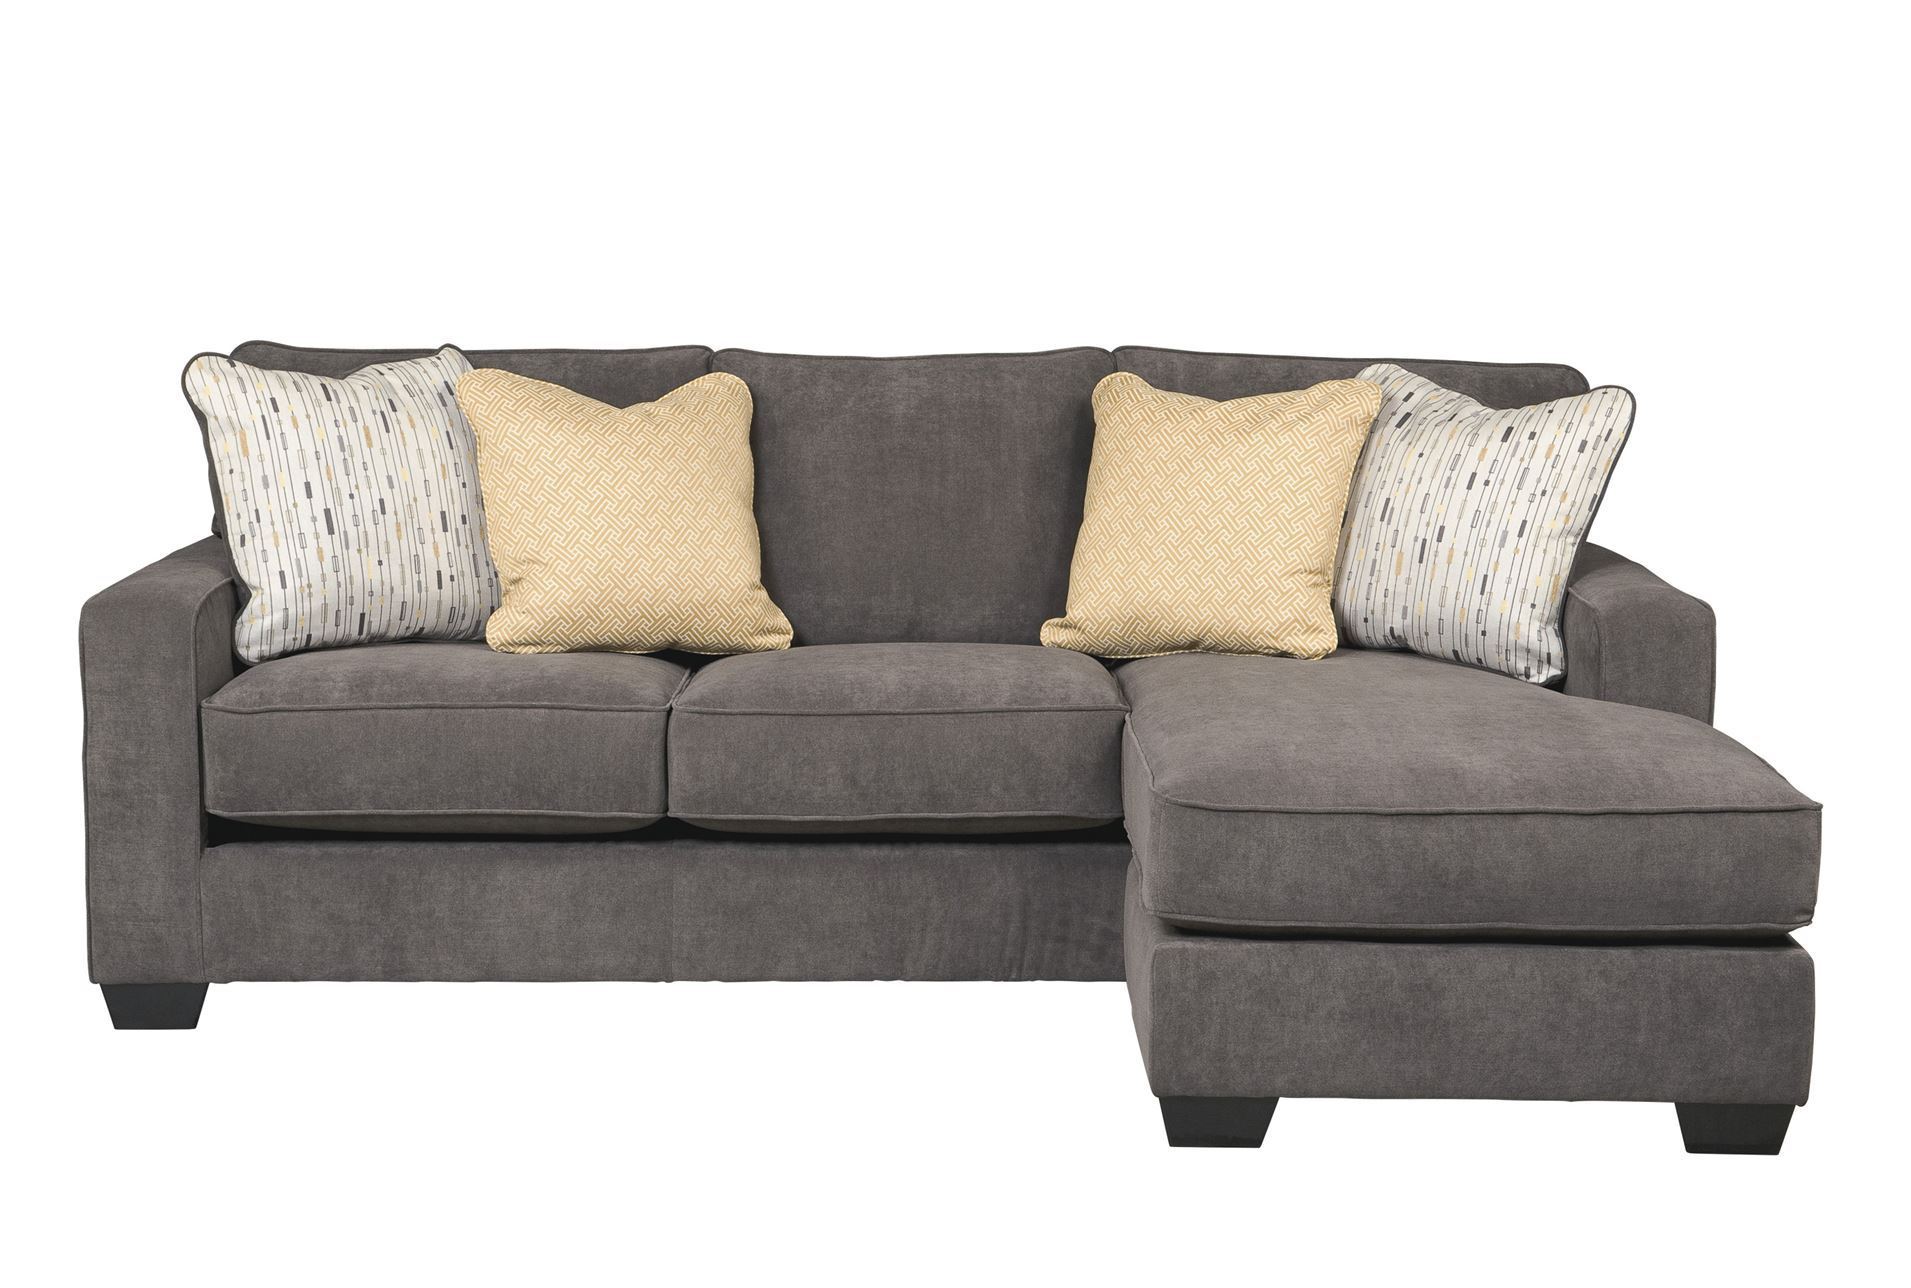 Hodan sofa chaise living spaces for Living spaces couches